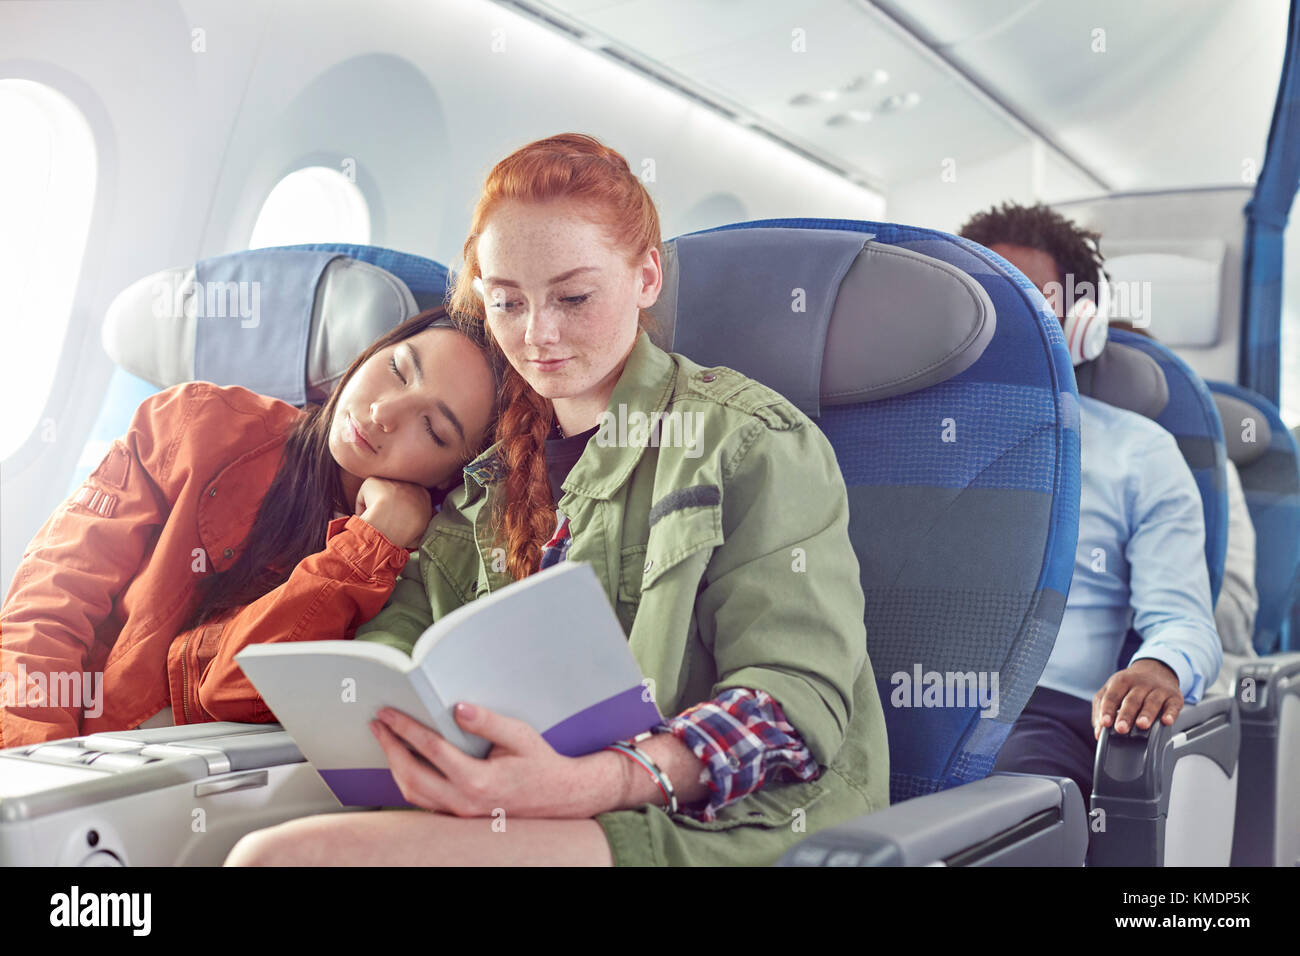 Affectionate young lesbian couple sleeping and reading on airplane - Stock Image